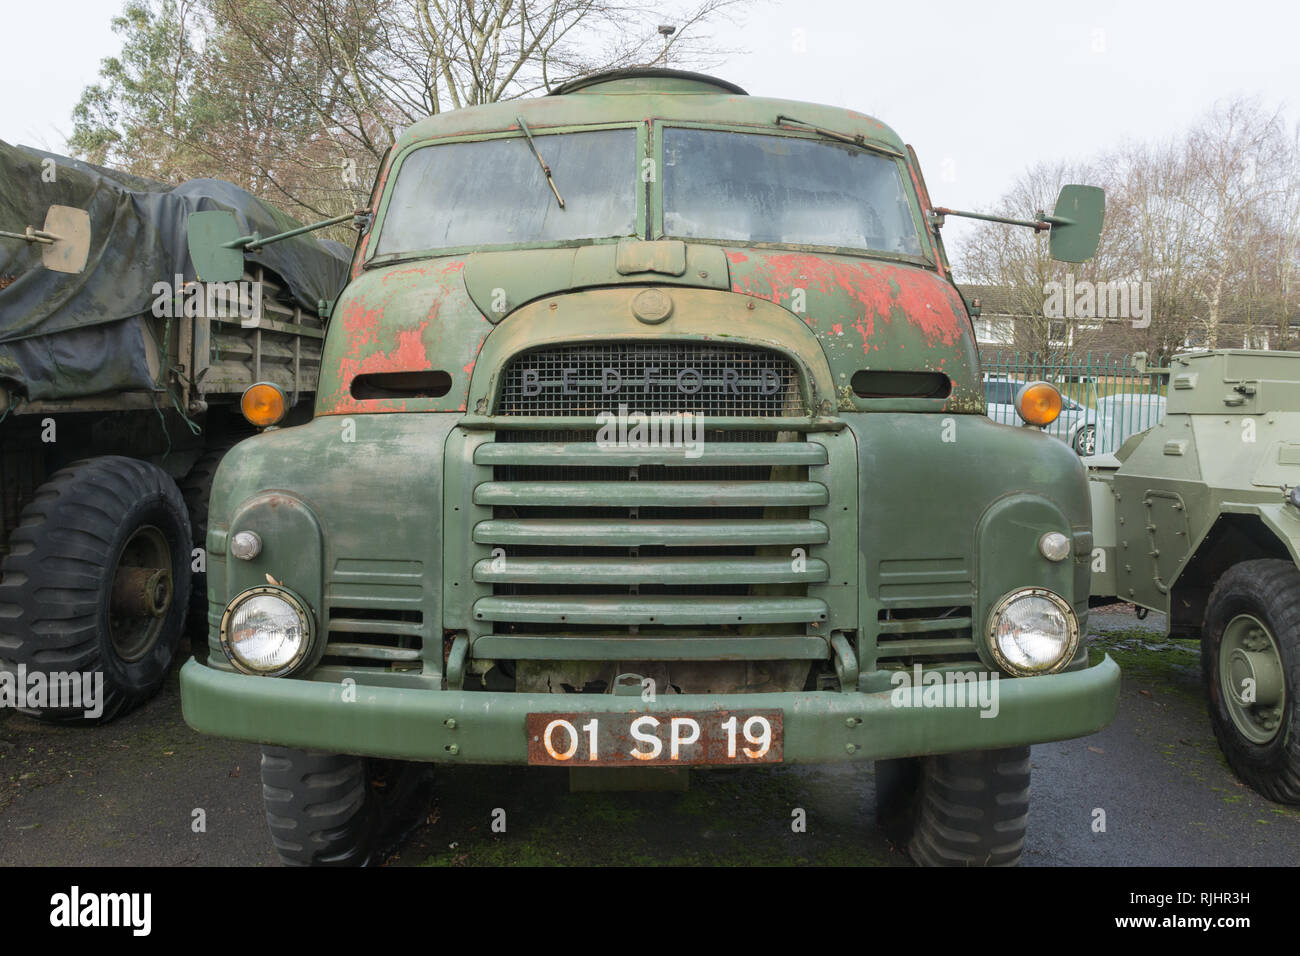 Bedford RL, 1963, a British military medium lorry or truck, at Aldershot Military Museum in Hampshire, UK - Stock Image